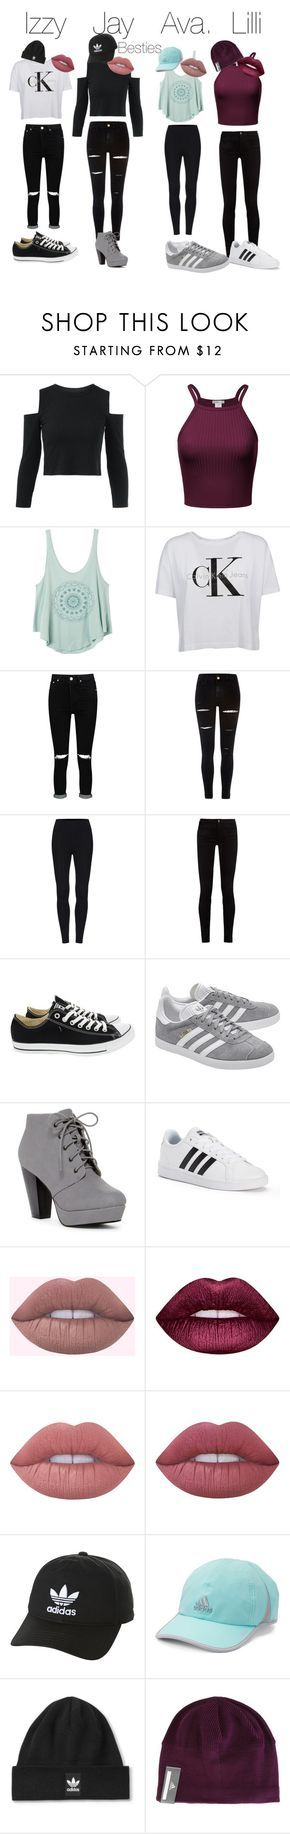 """""""Squad"""" by isabella2845 ❤ liked on Polyvore featuring RVCA, Calvin Klein, Boohoo, River Island, Gucci, Converse, adidas Originals, adidas, Lime Crime and Topshop"""